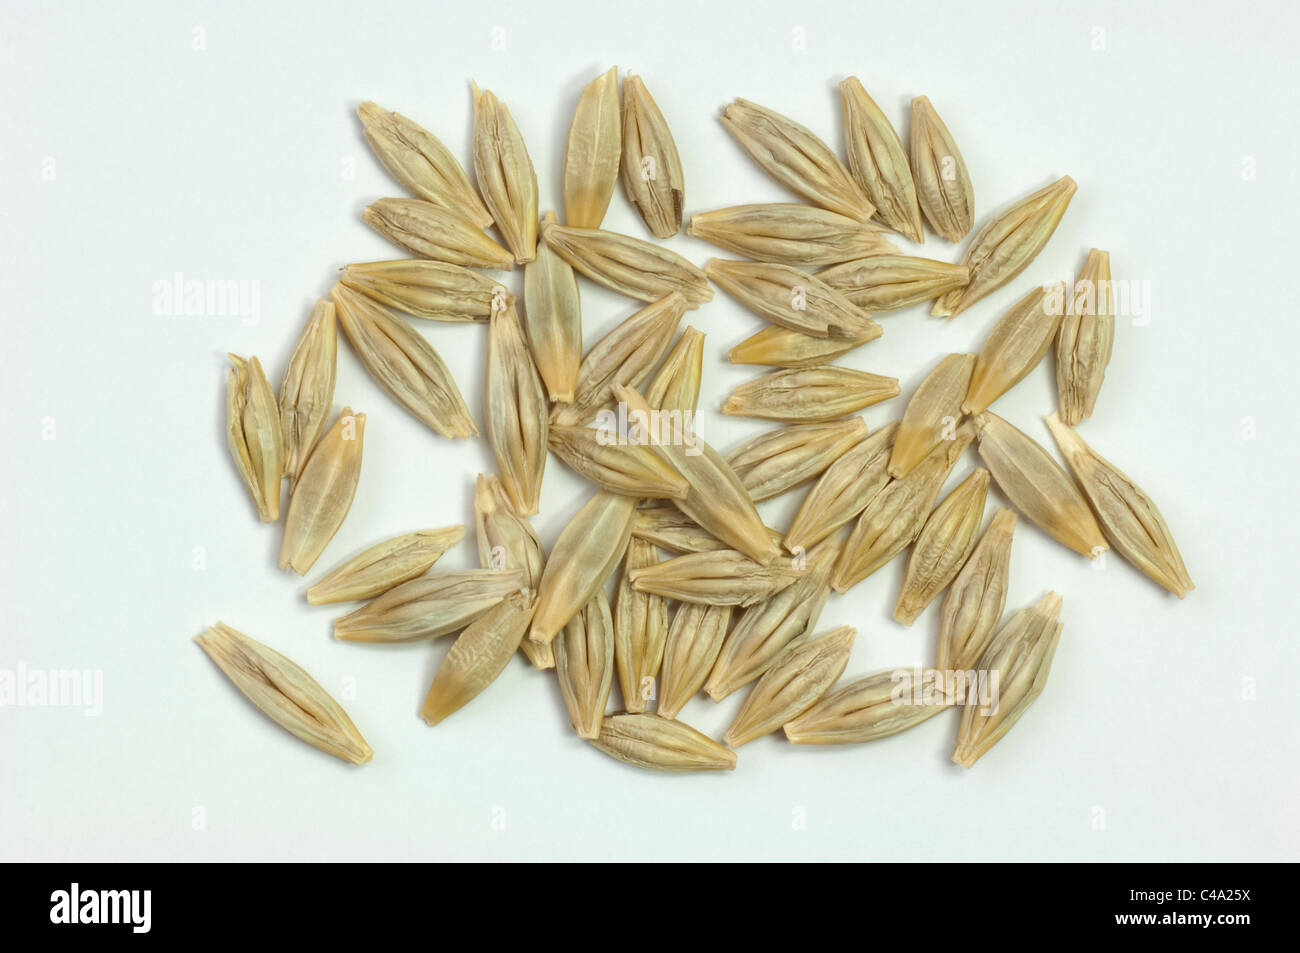 Wild Barley (Hordeum vulgare subsp. spontaneum), seeds. Studio picture against a white background. - Stock Image